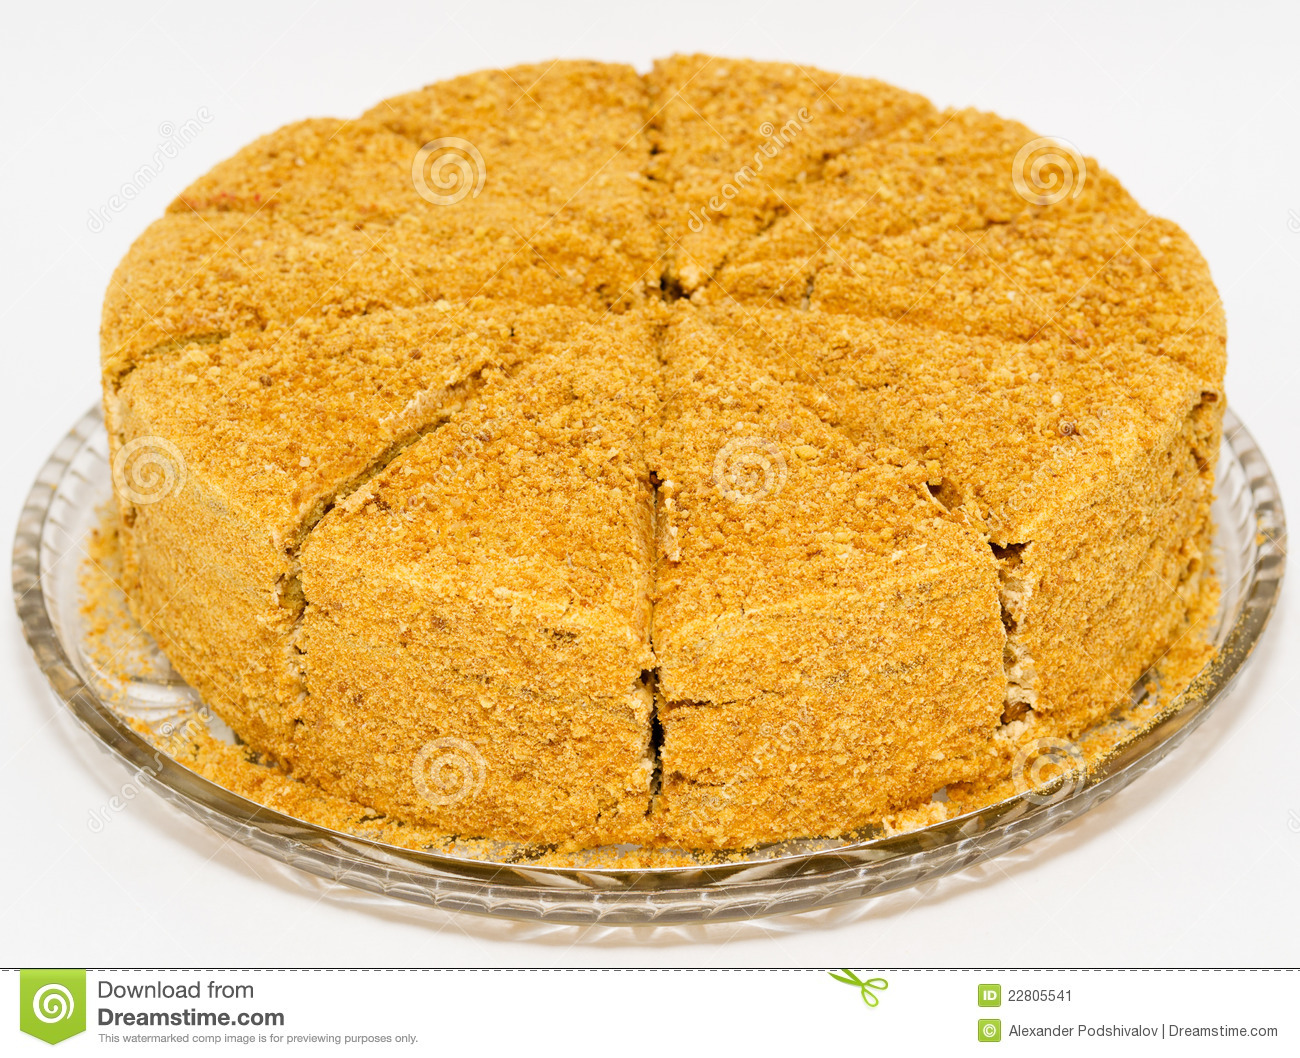 Clipart Of Honey Cake : Honey Cake Stock Image - Image: 22805541